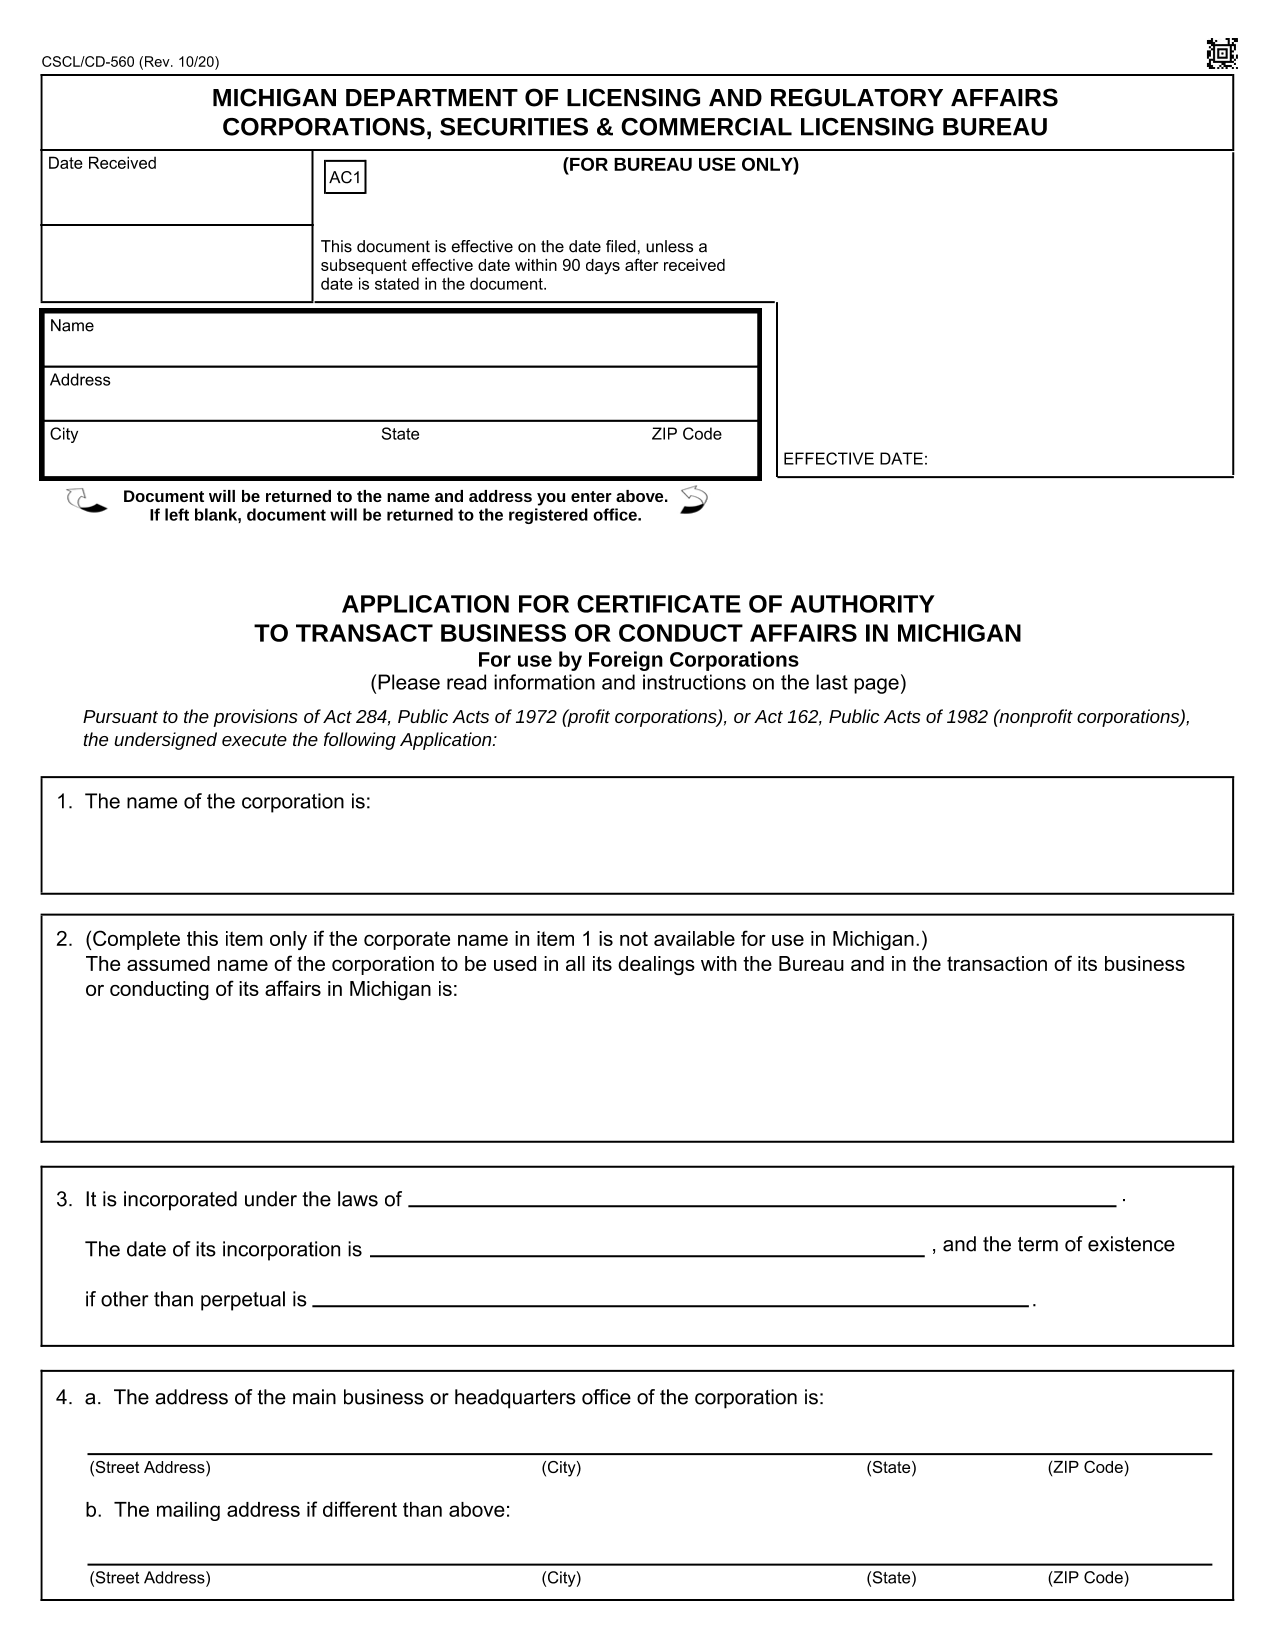 application-for-certificate-of-authority-to-transact-business-or-conduct-affairs-in-michigan